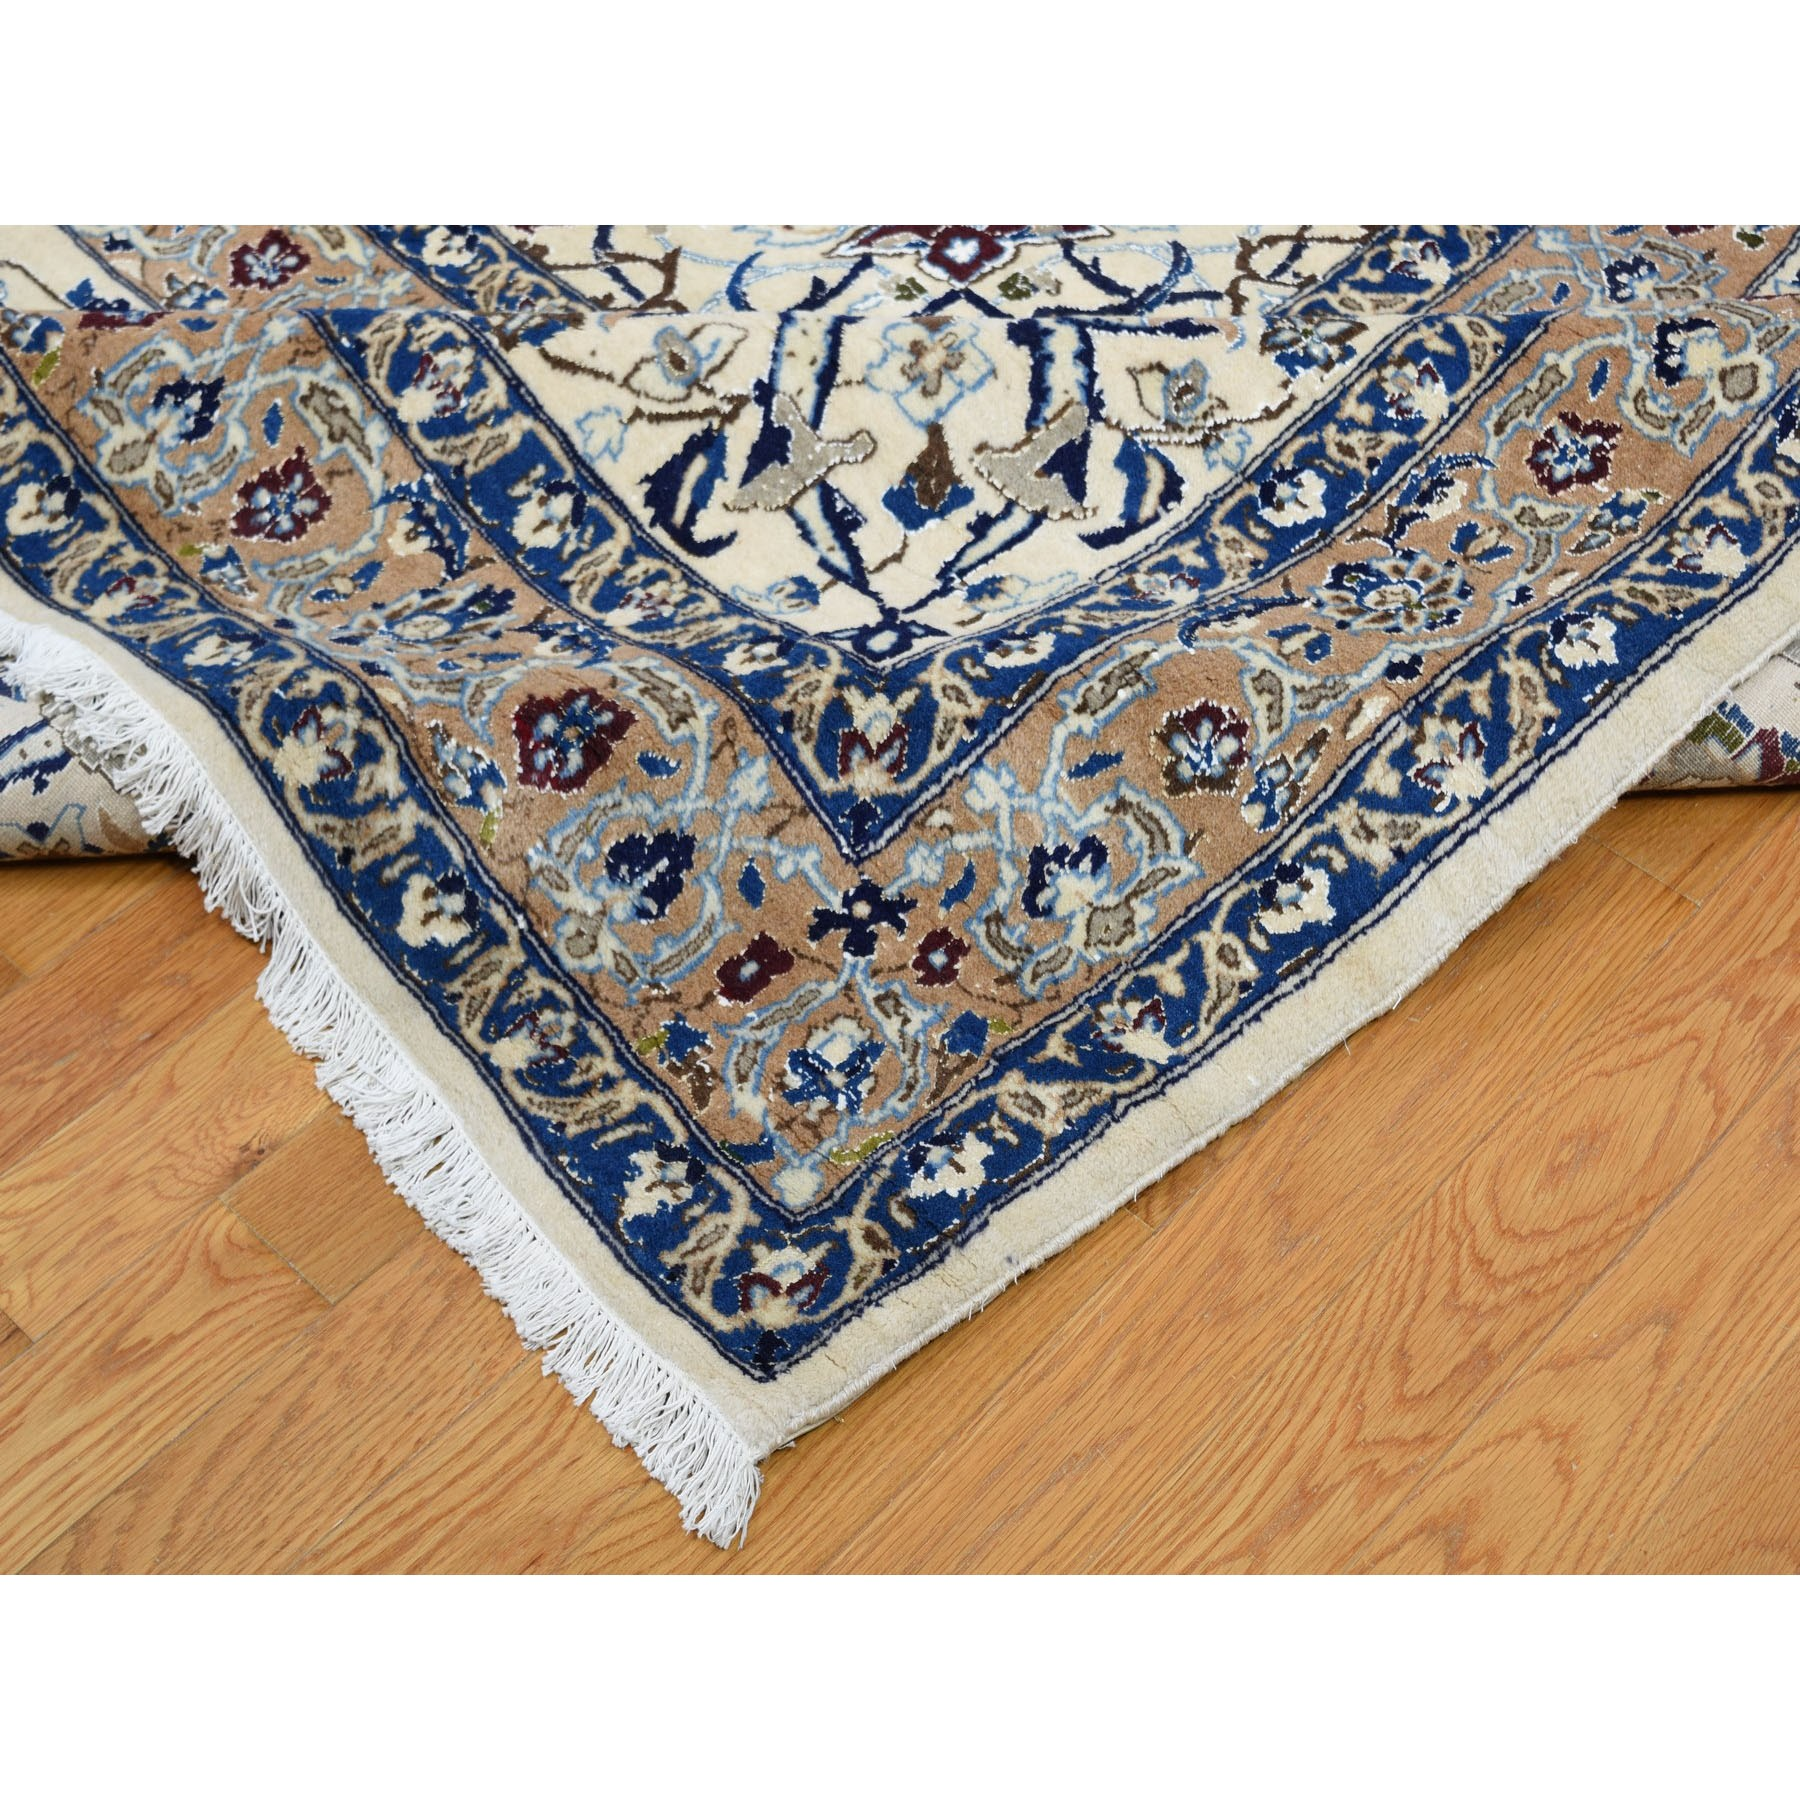 16-2 x26-6- Mansion Size Wool And Silk 250 KPSI Persian Nain Hand Knotted Oriental Rug